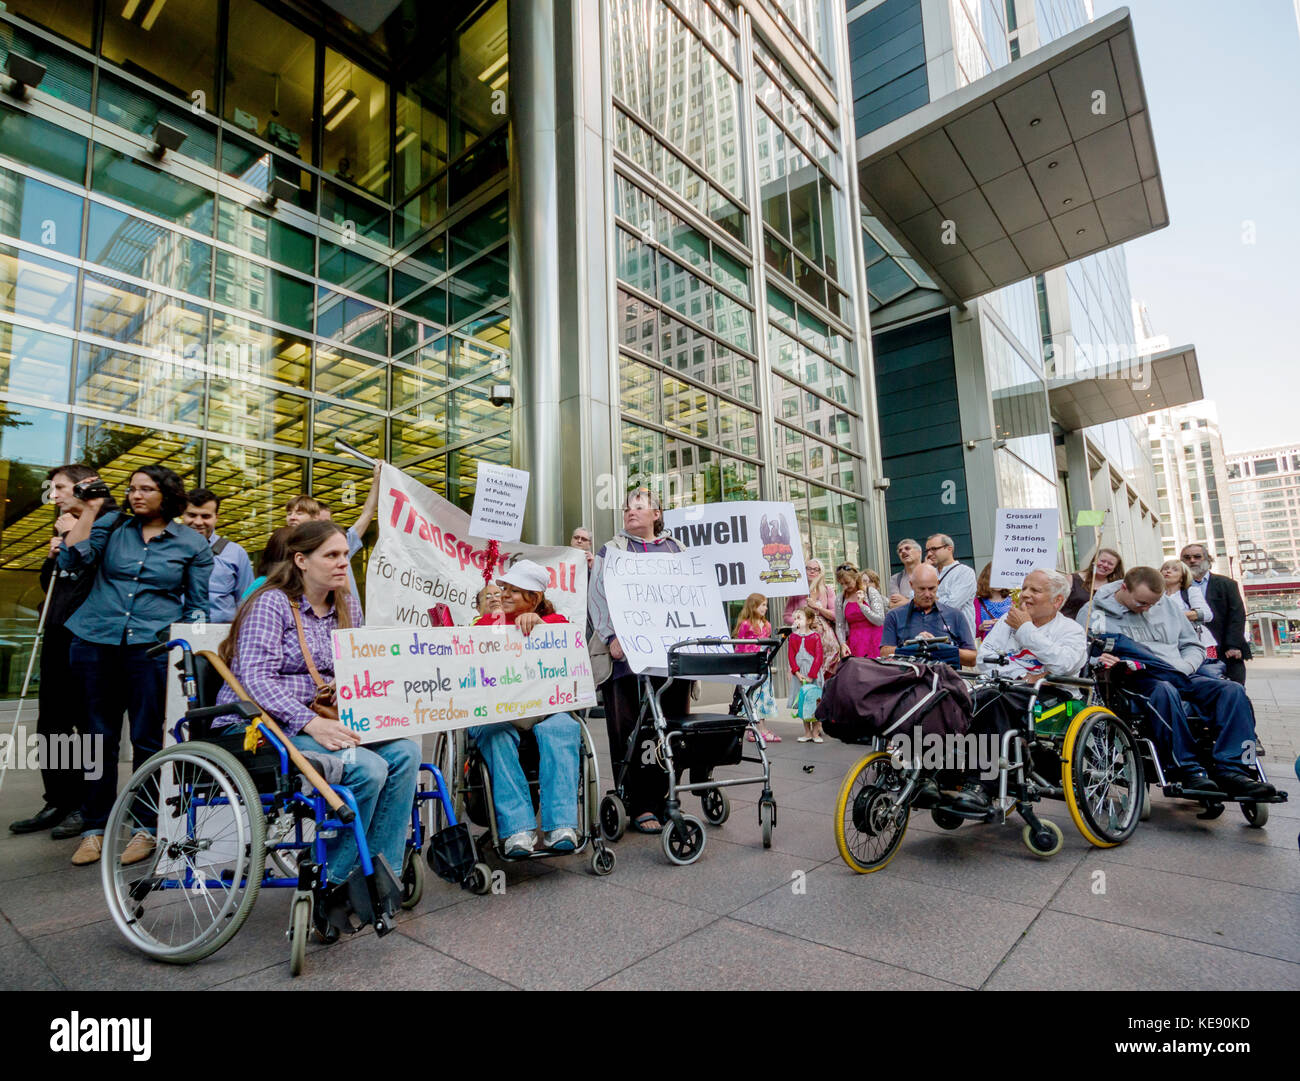 Disability campaigners protest outside the Crossrail head office building in Canary Wharf, London, UK. - Stock Image